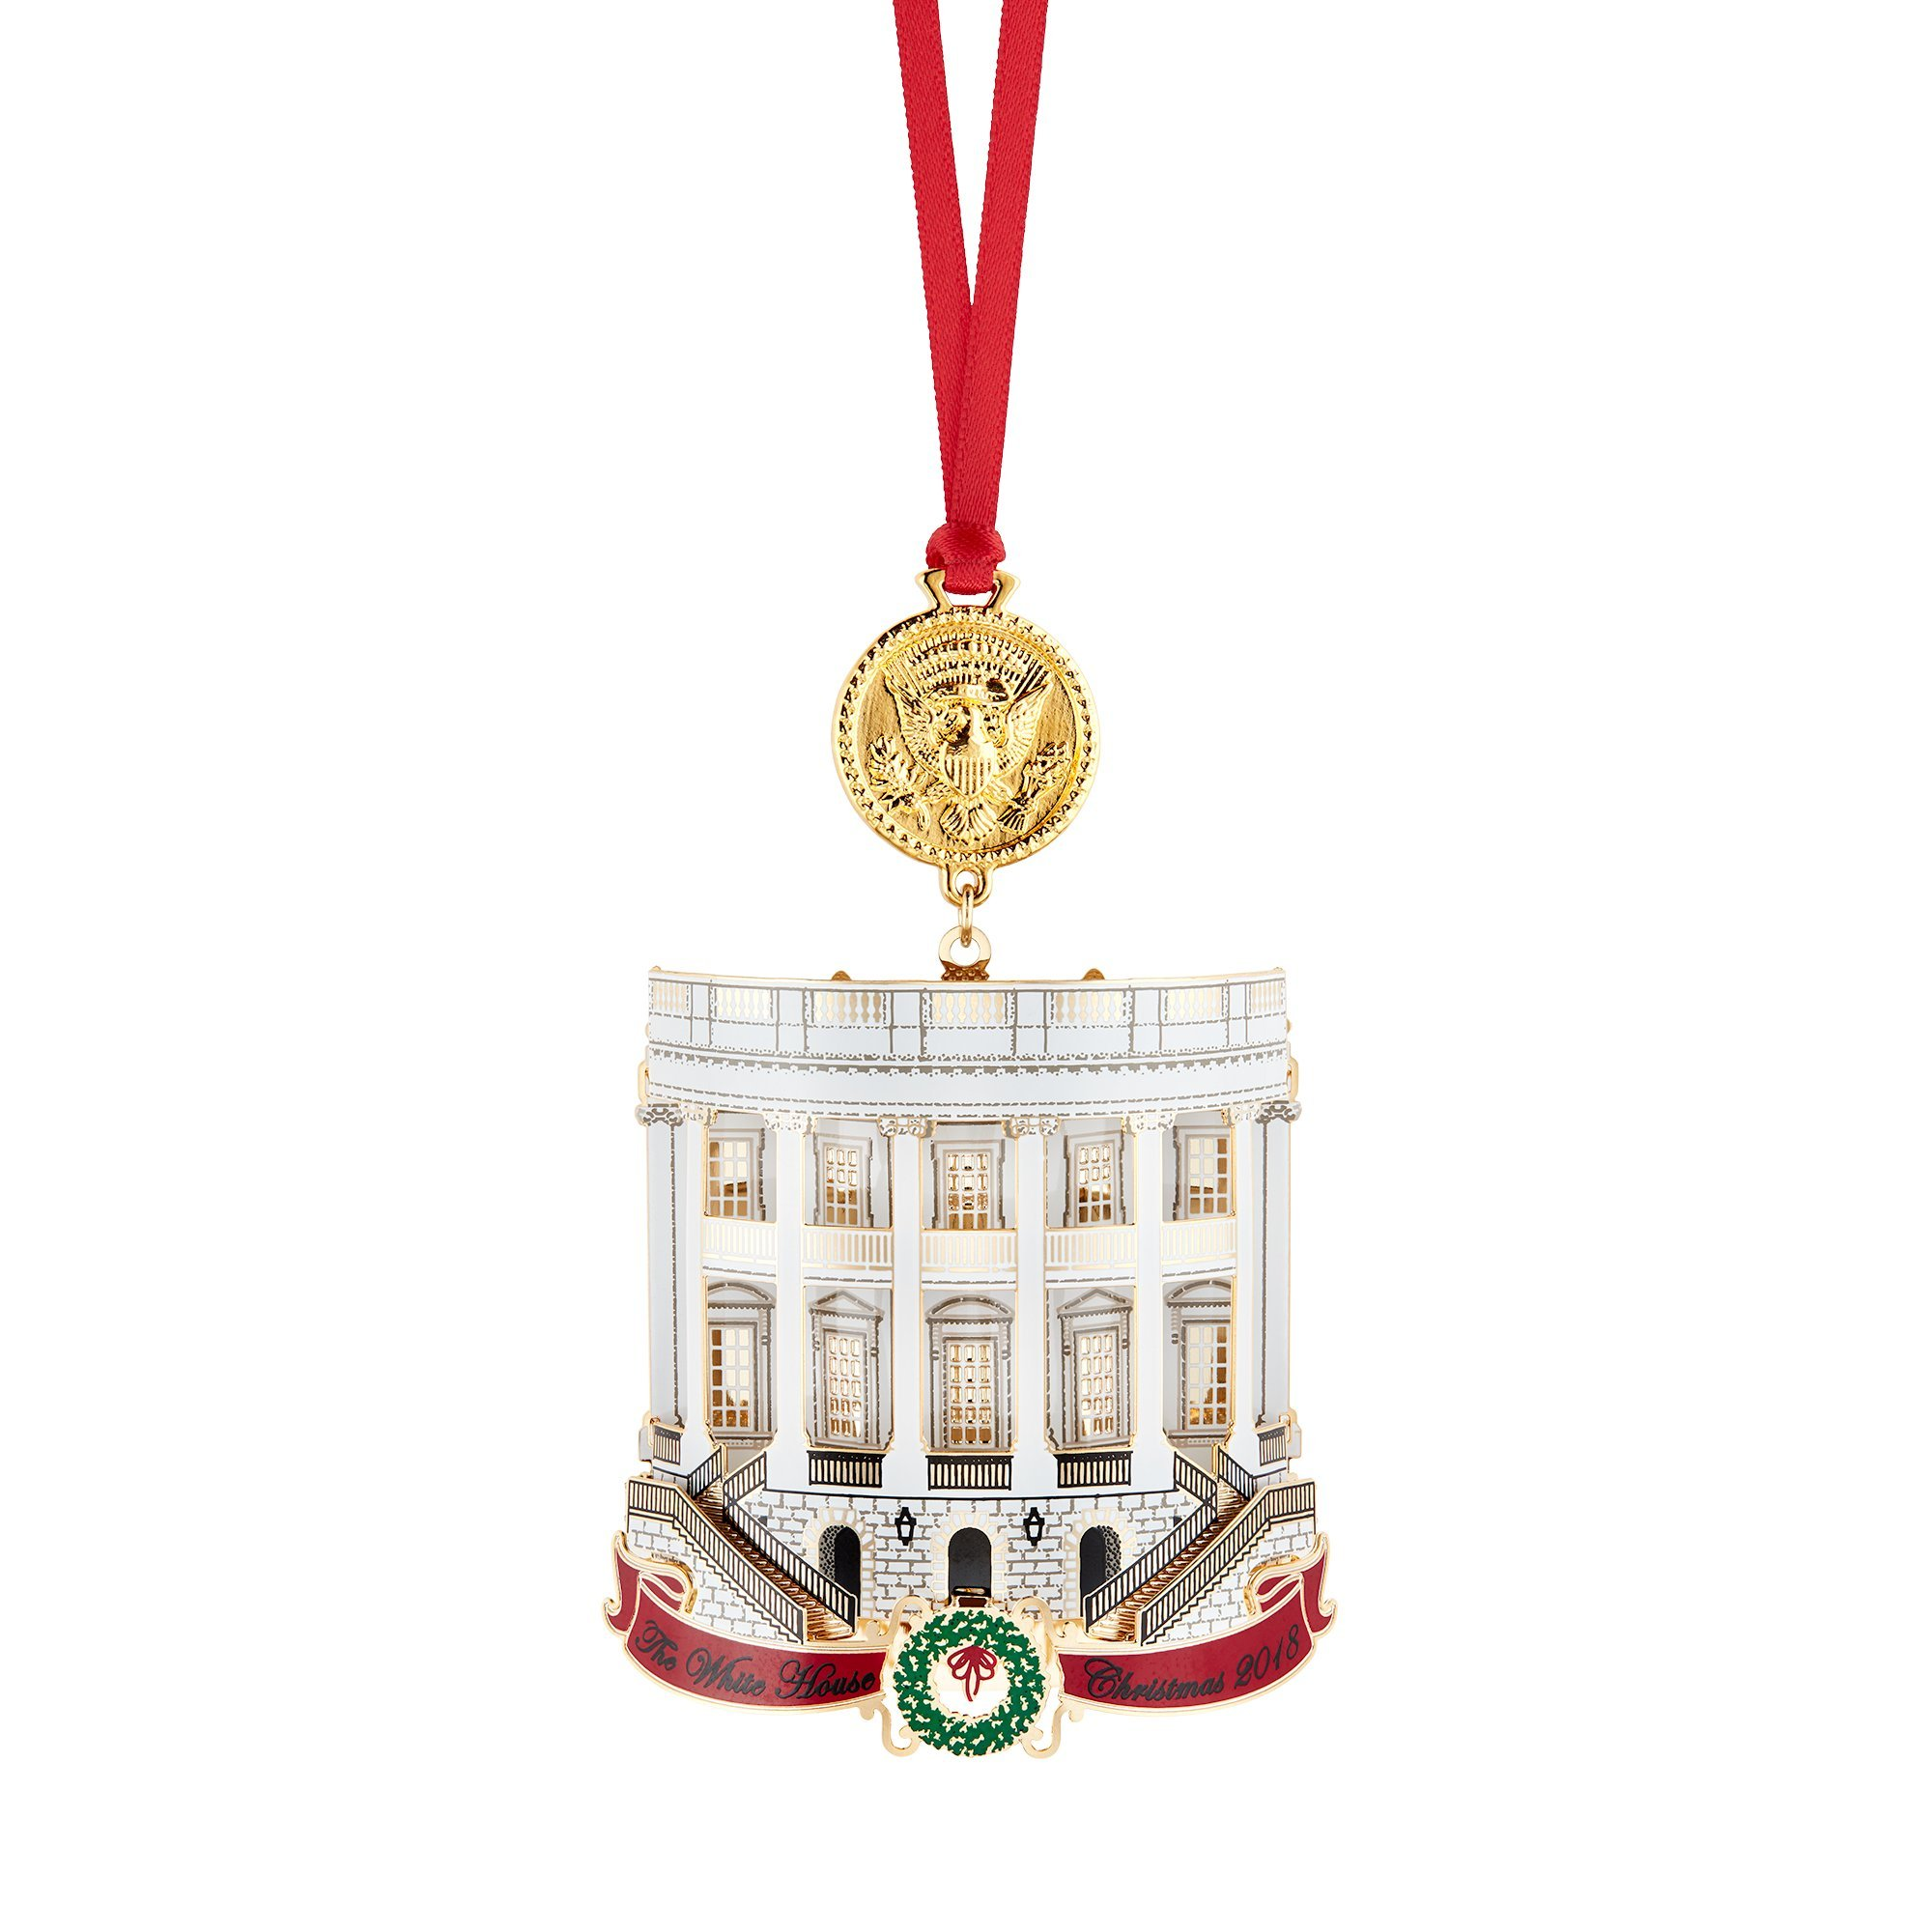 Official 2018 White House Christmas Ornament by White House Historical Association